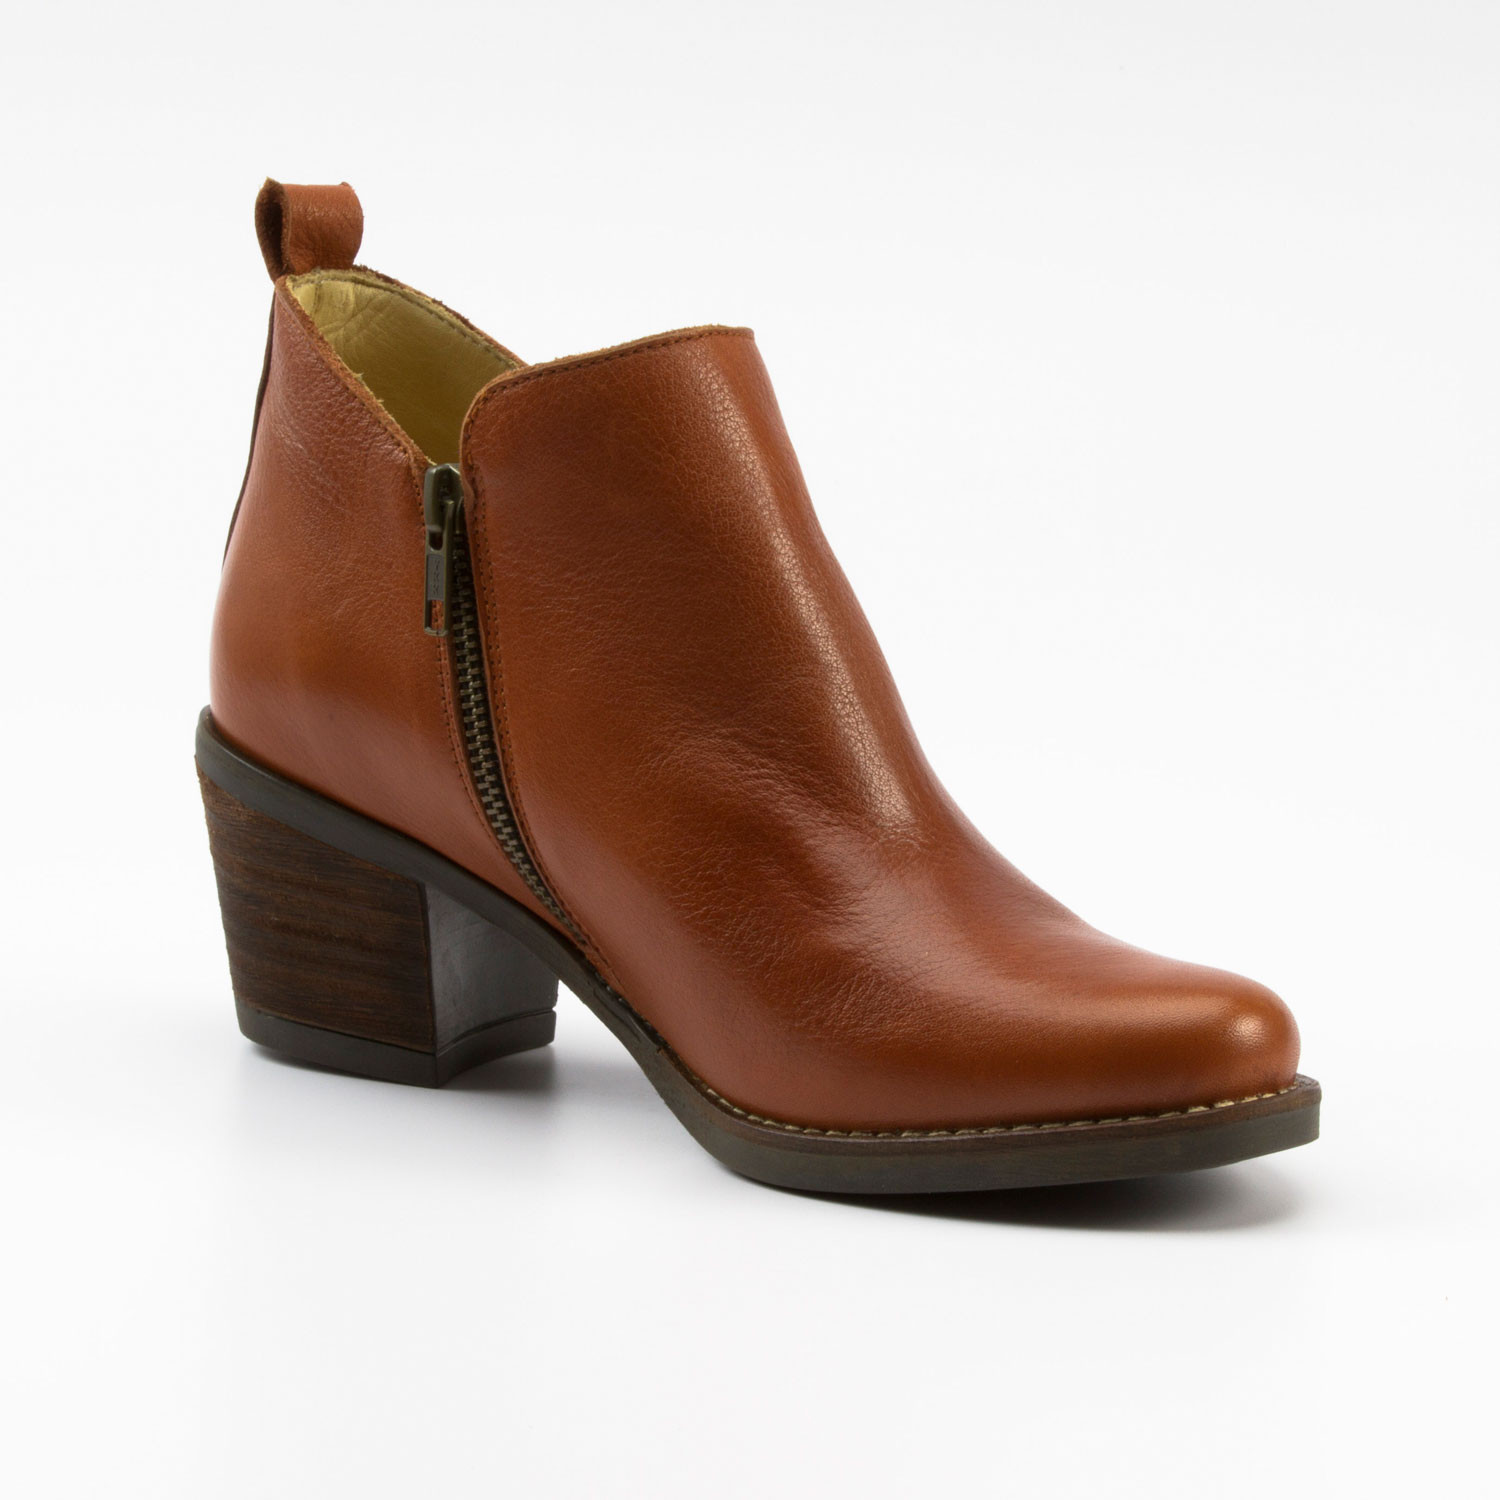 Bio-Ankle-Boot, ziegel